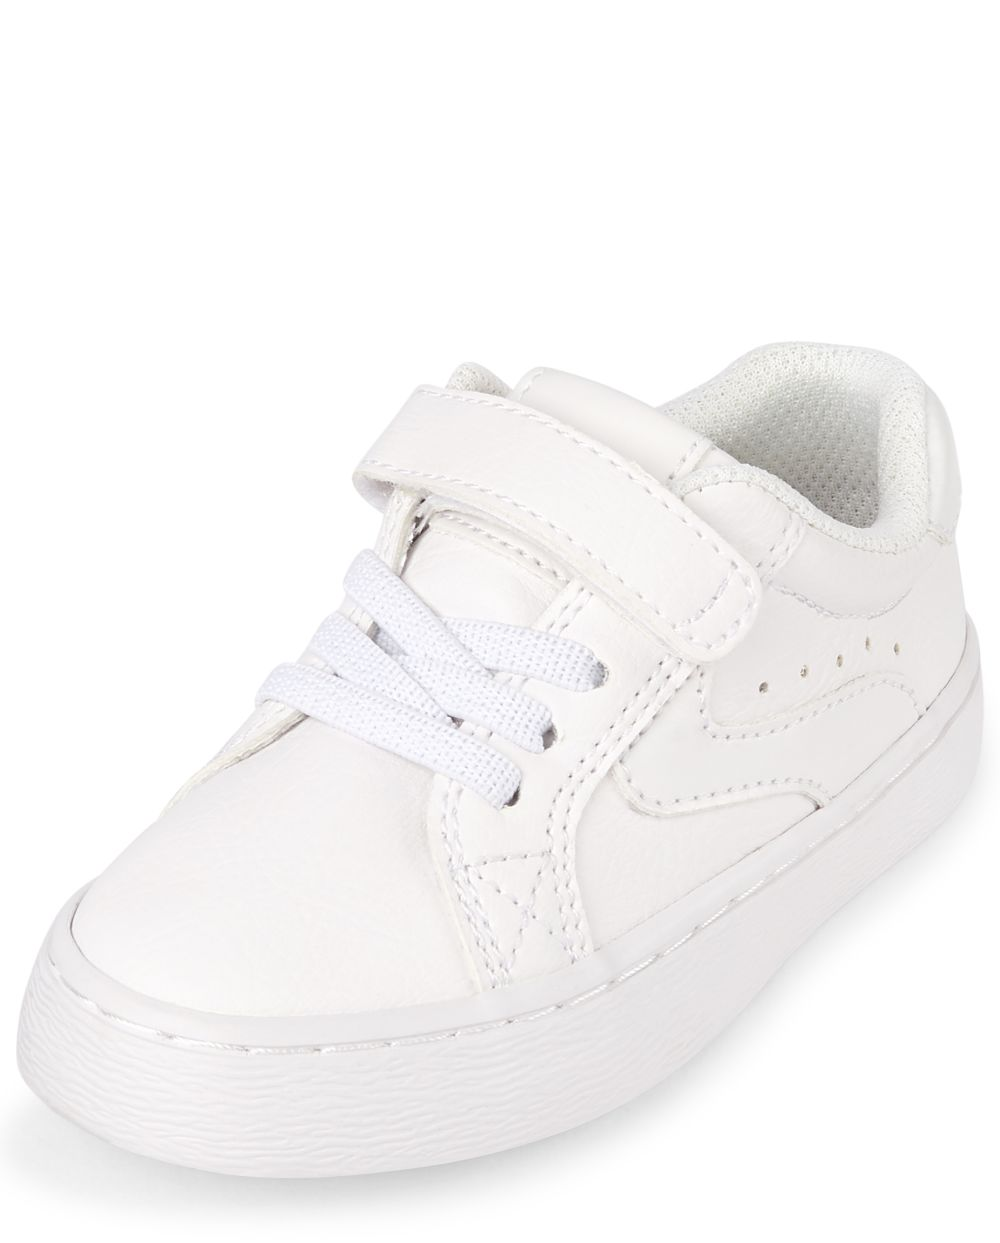 Toddler Boys Uniform Low Top Sneakers